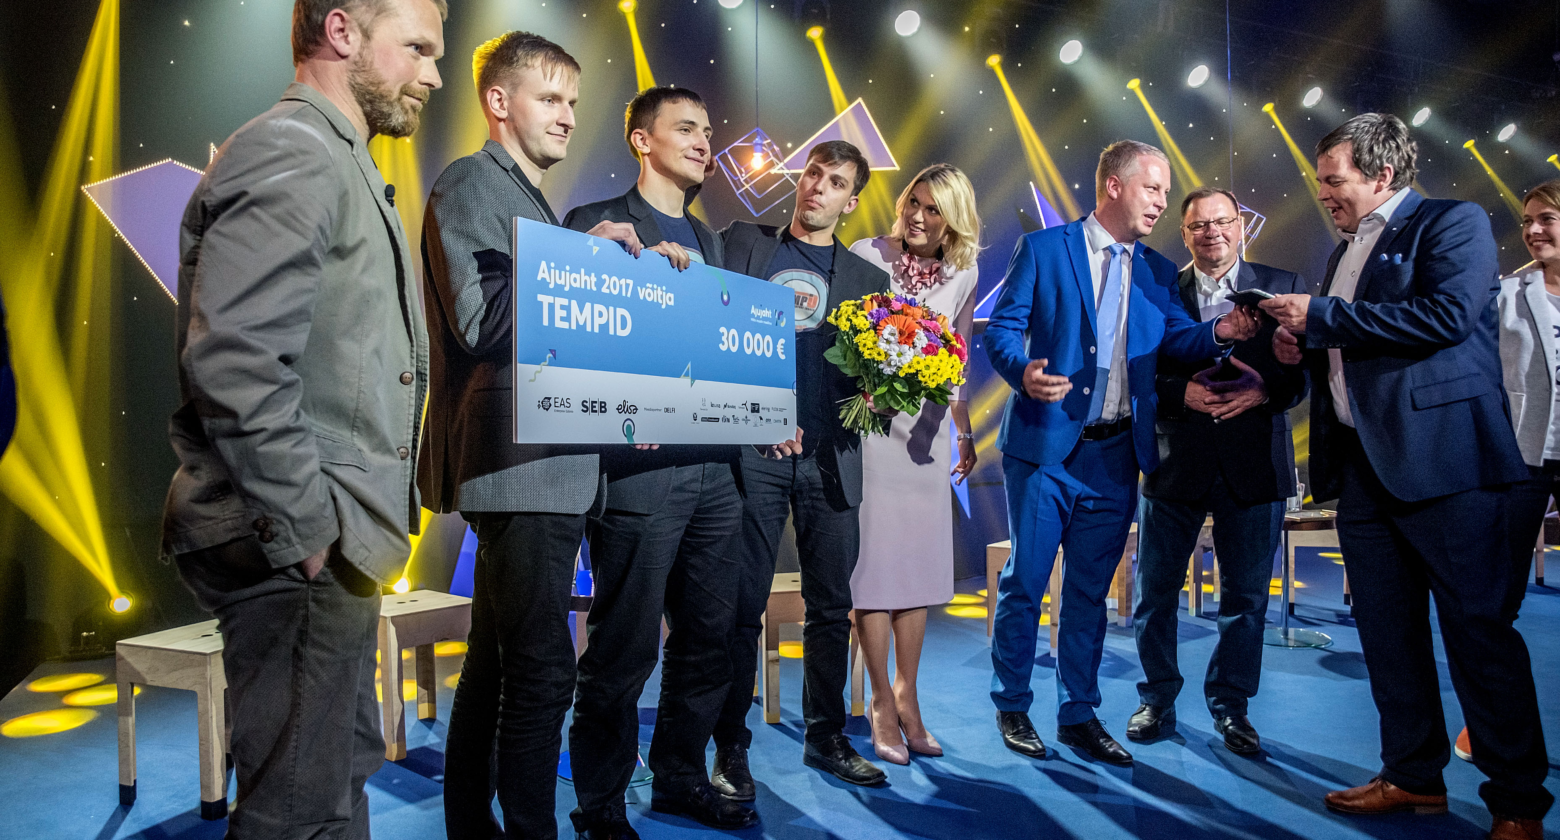 Presenting the winner of our anniversary season: TempID